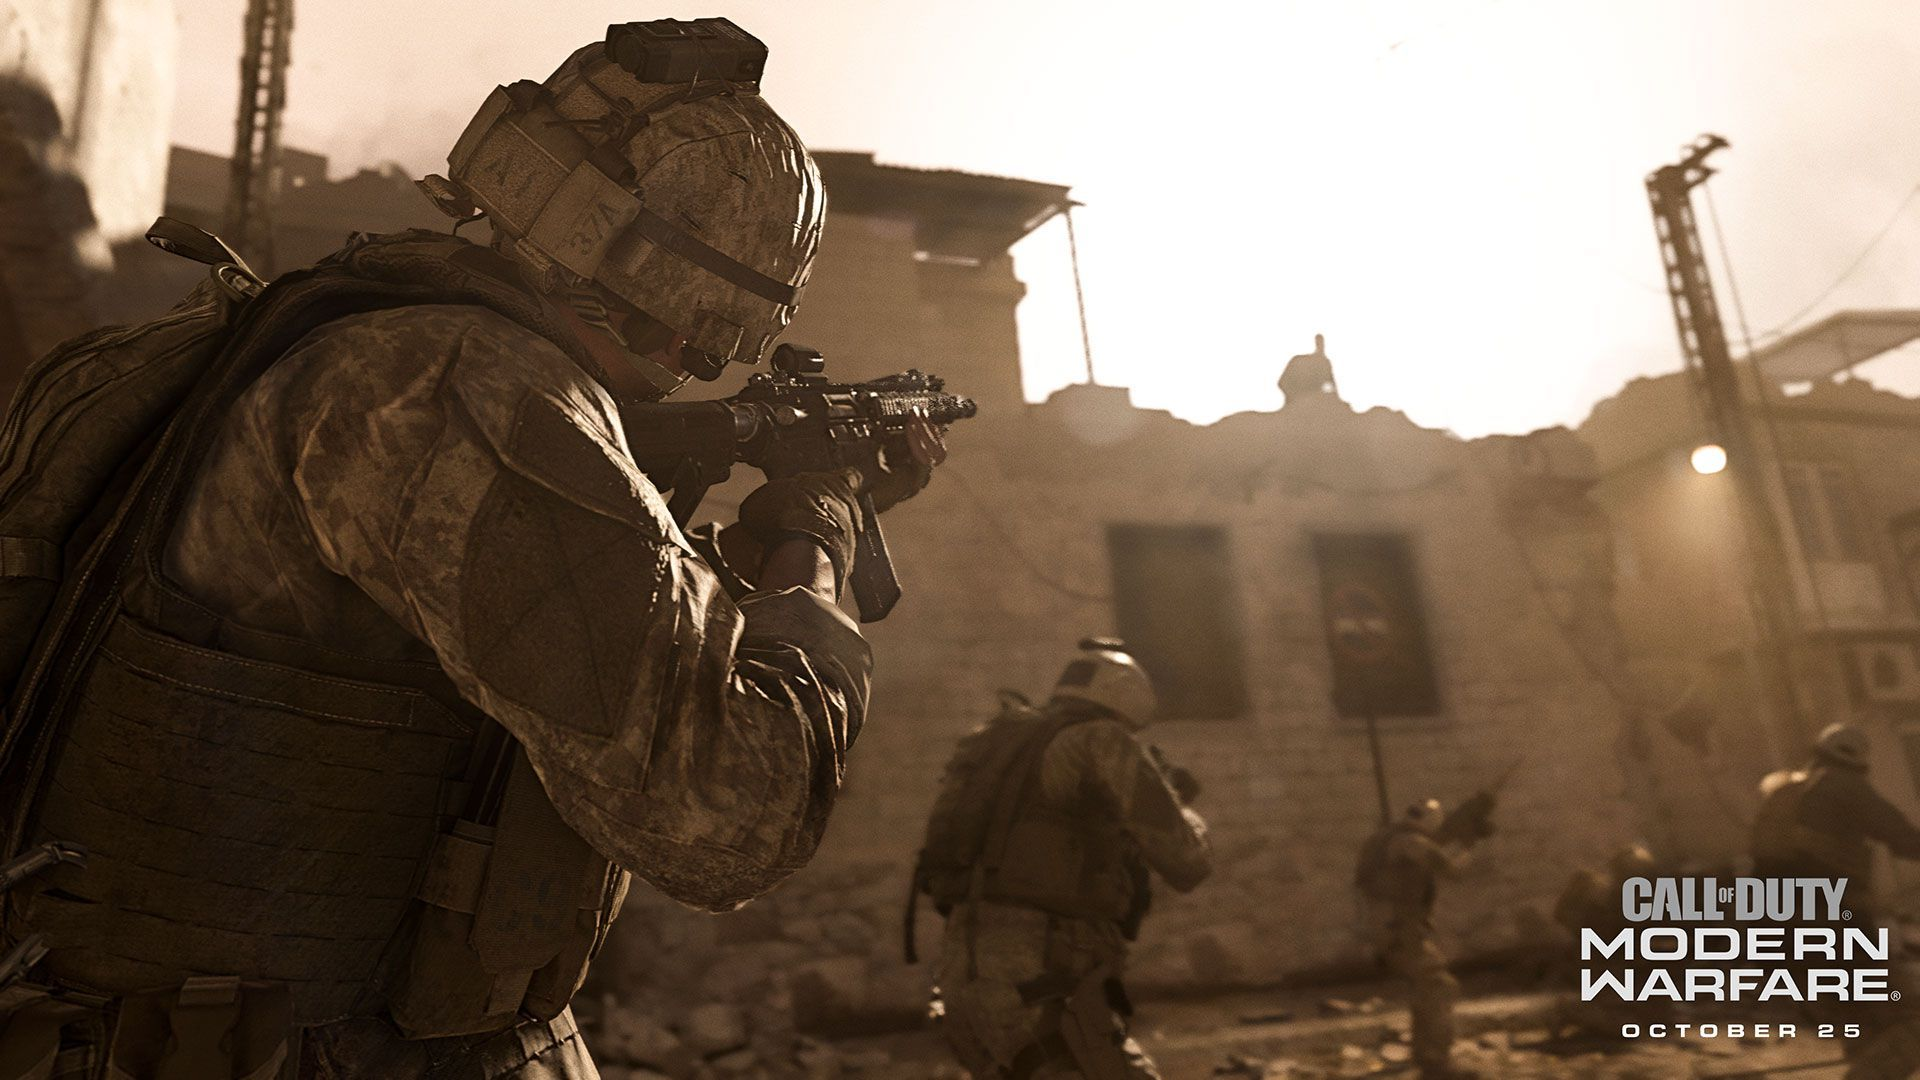 Call of Duty: Modern Warfare is ready for pre-order right now